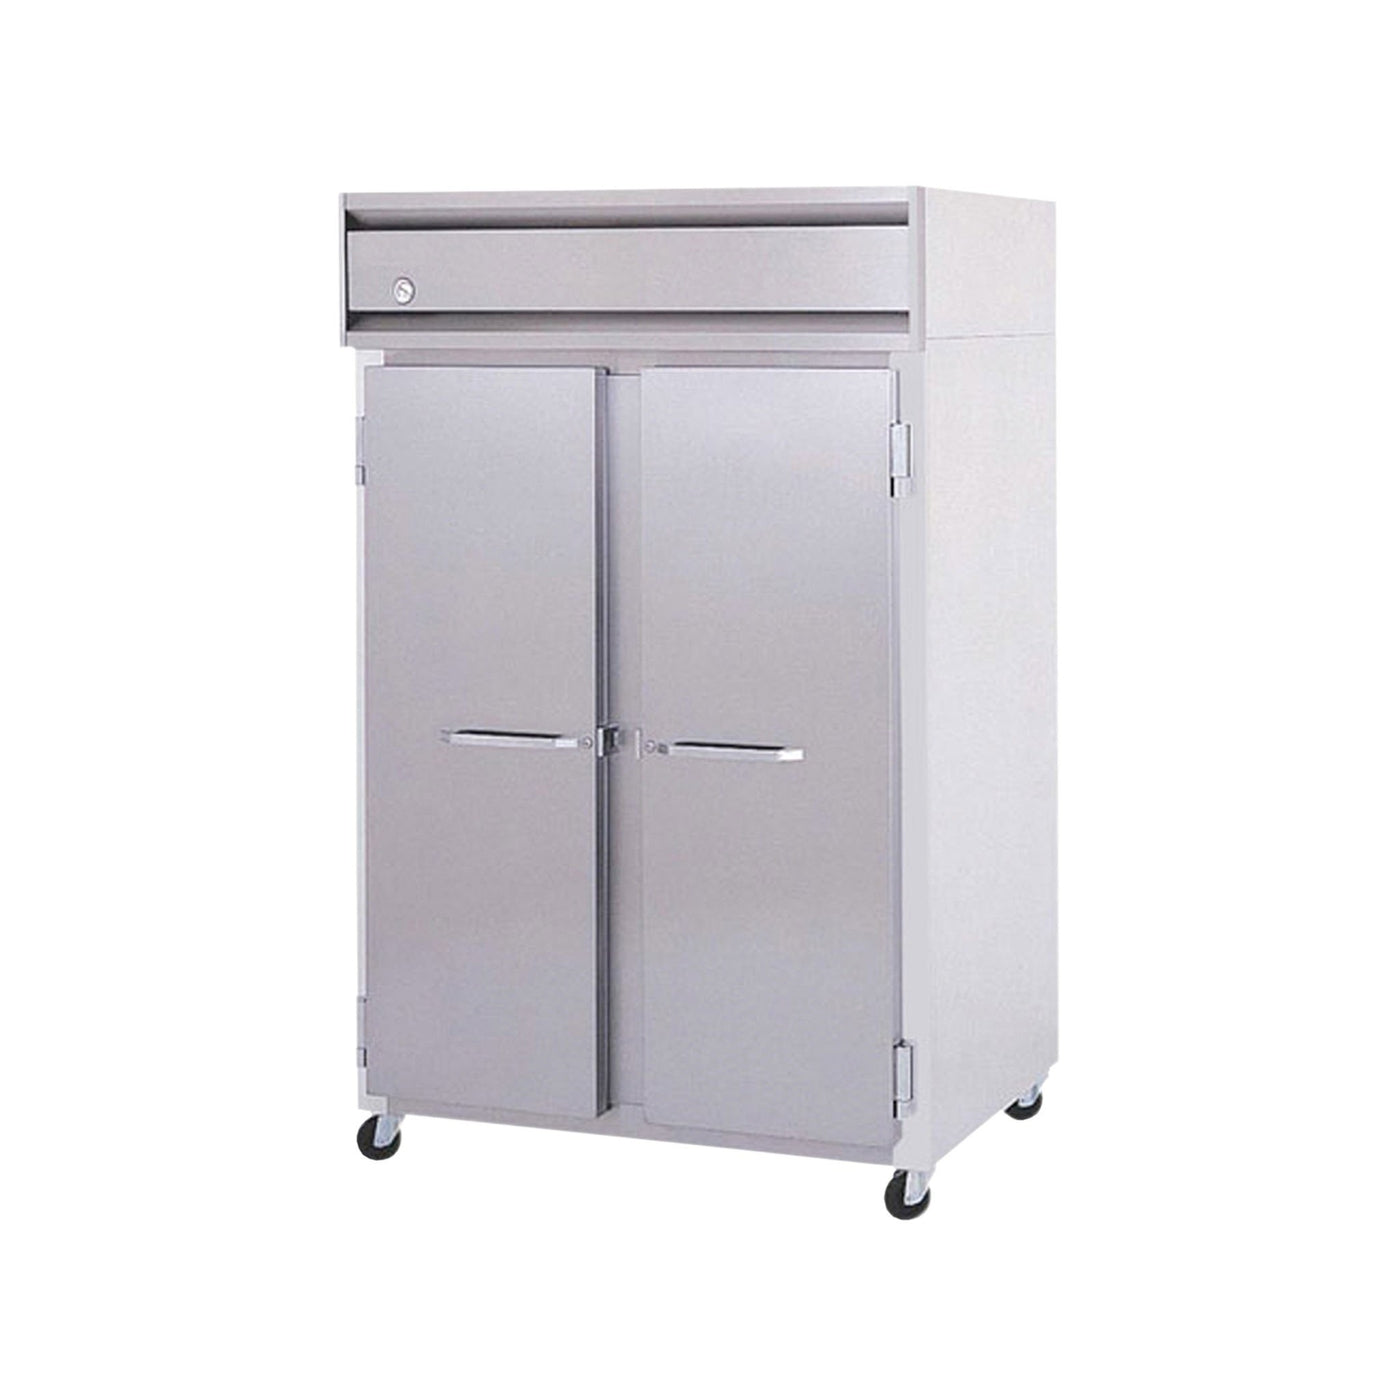 Reach-in Refrigerators-Laboratory Accessory-Mortech Manufacturing Company Inc. Quality Stainless Steel Autopsy, Morgue, Funeral Home, Necropsy, Veterinary / Anatomy, Dissection Equipment and Accessories